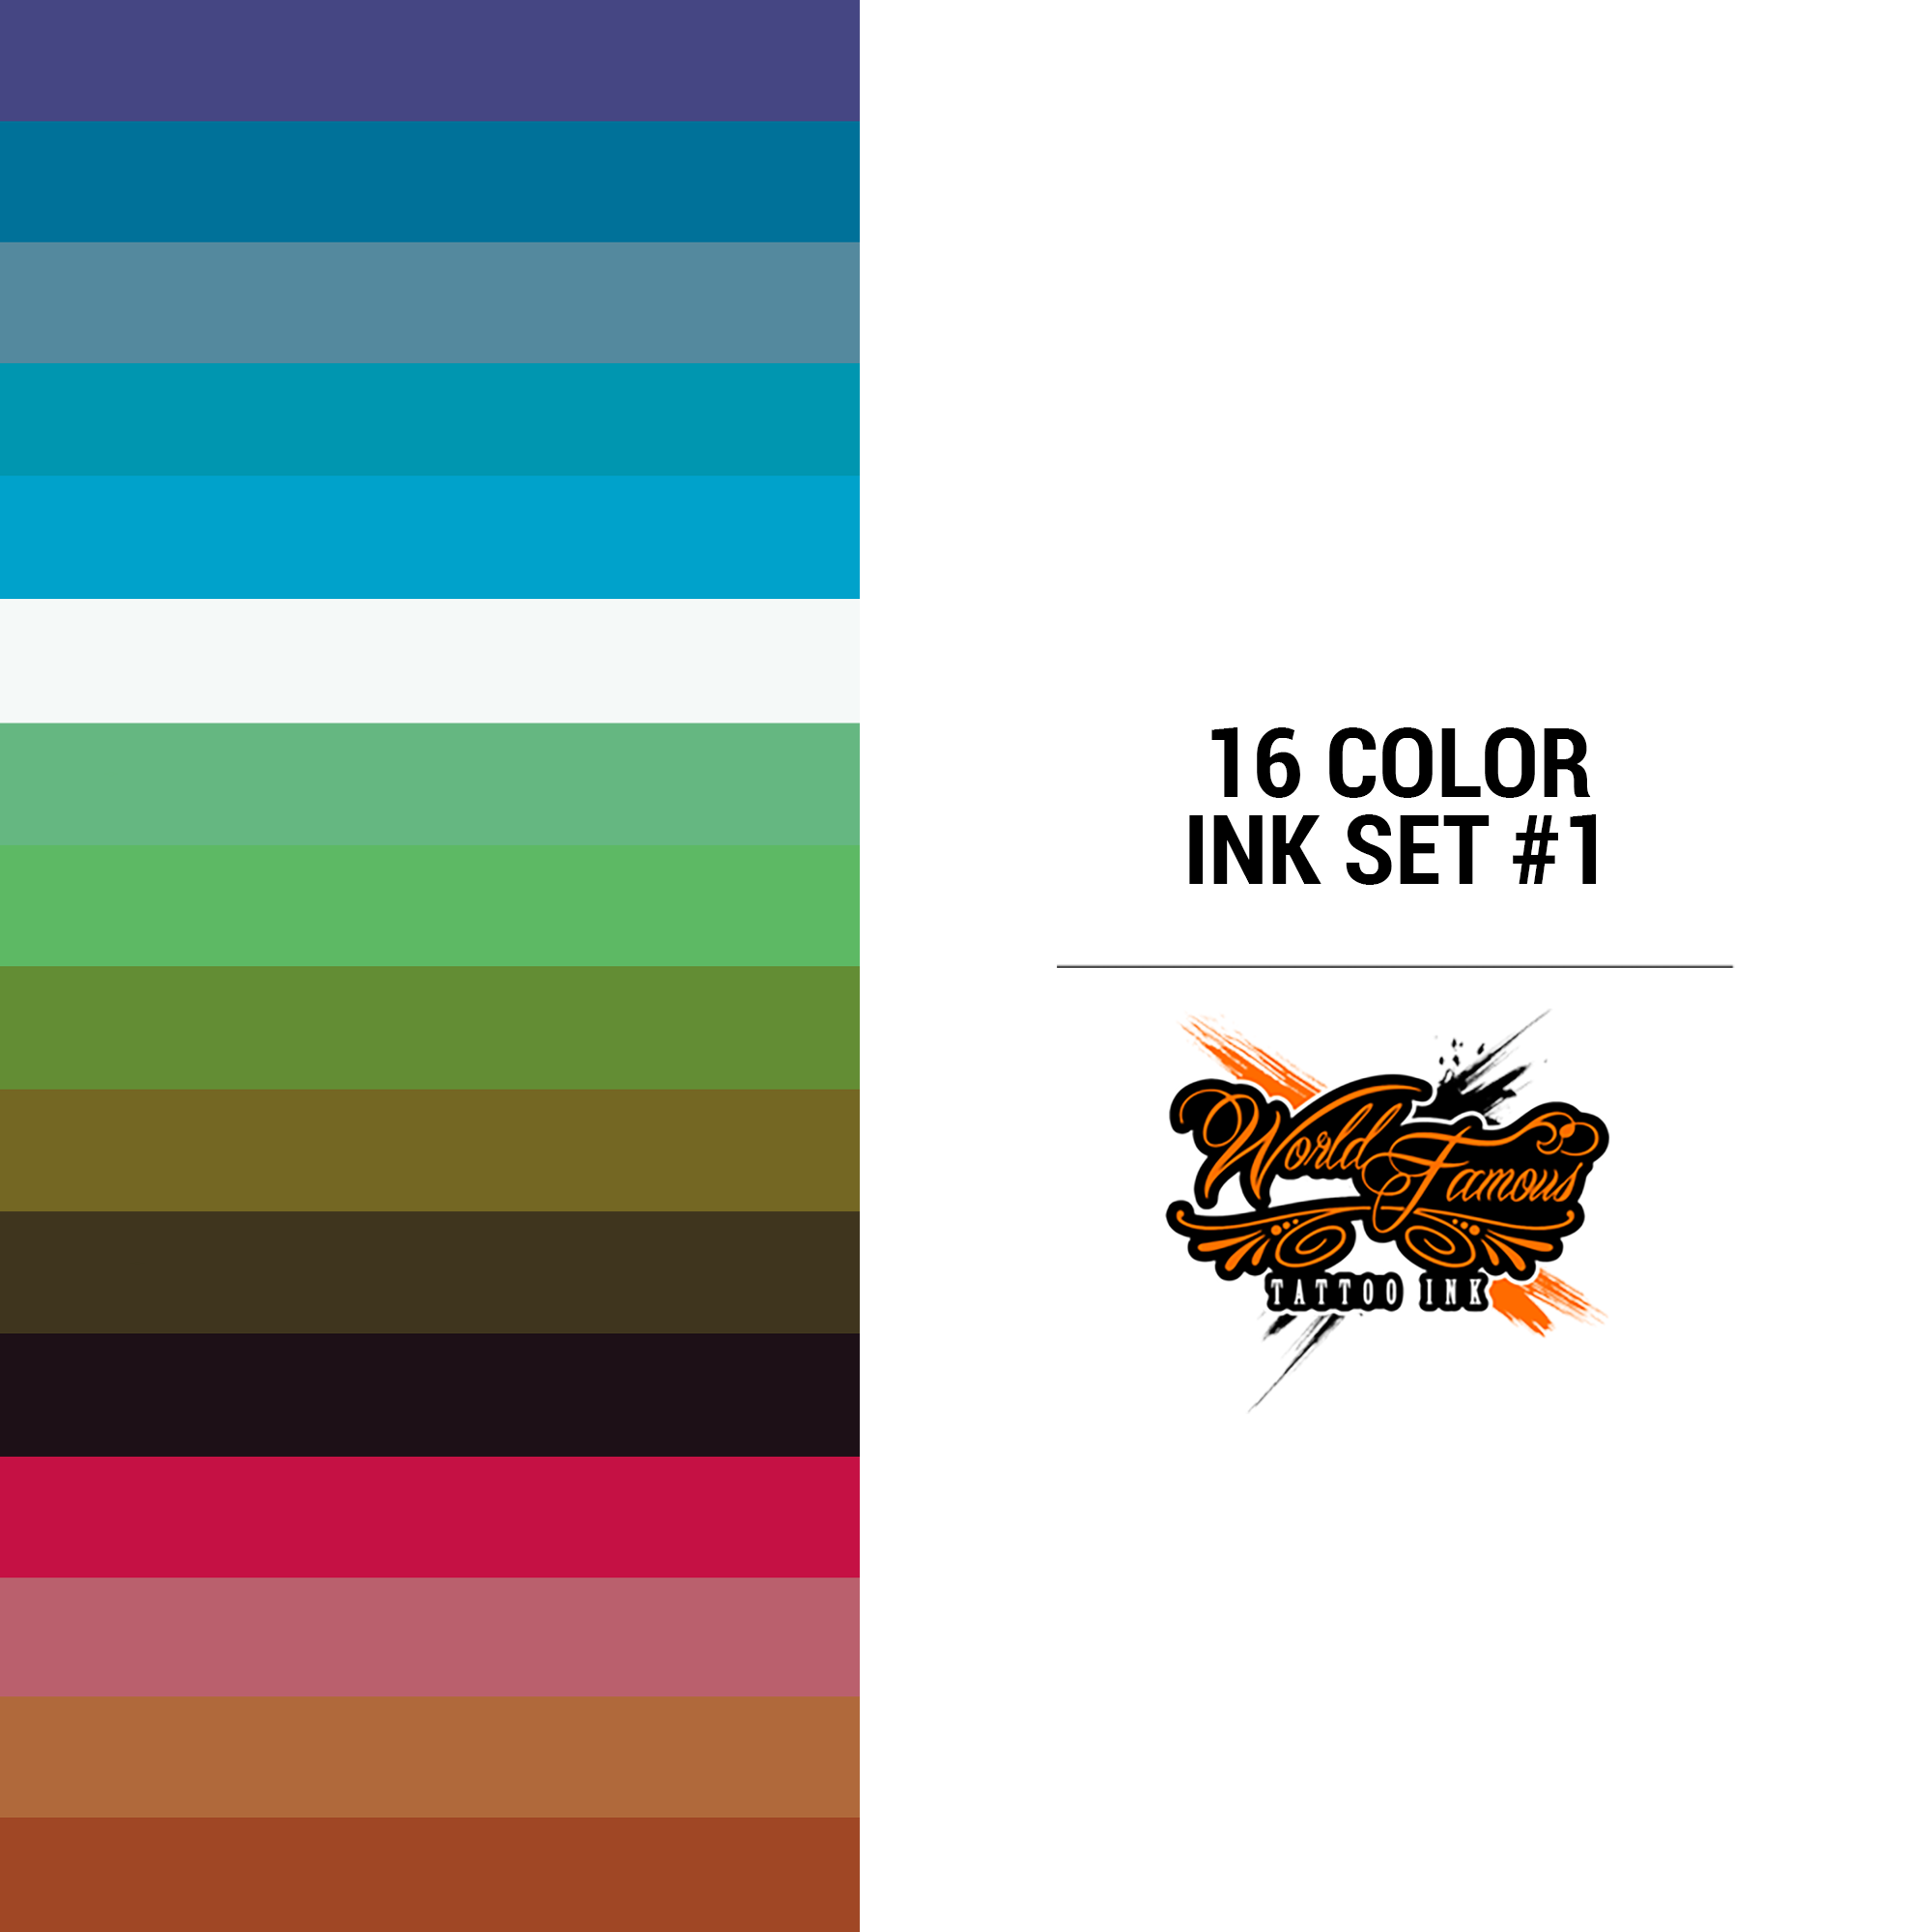 WF 16 Color Ink Set #1